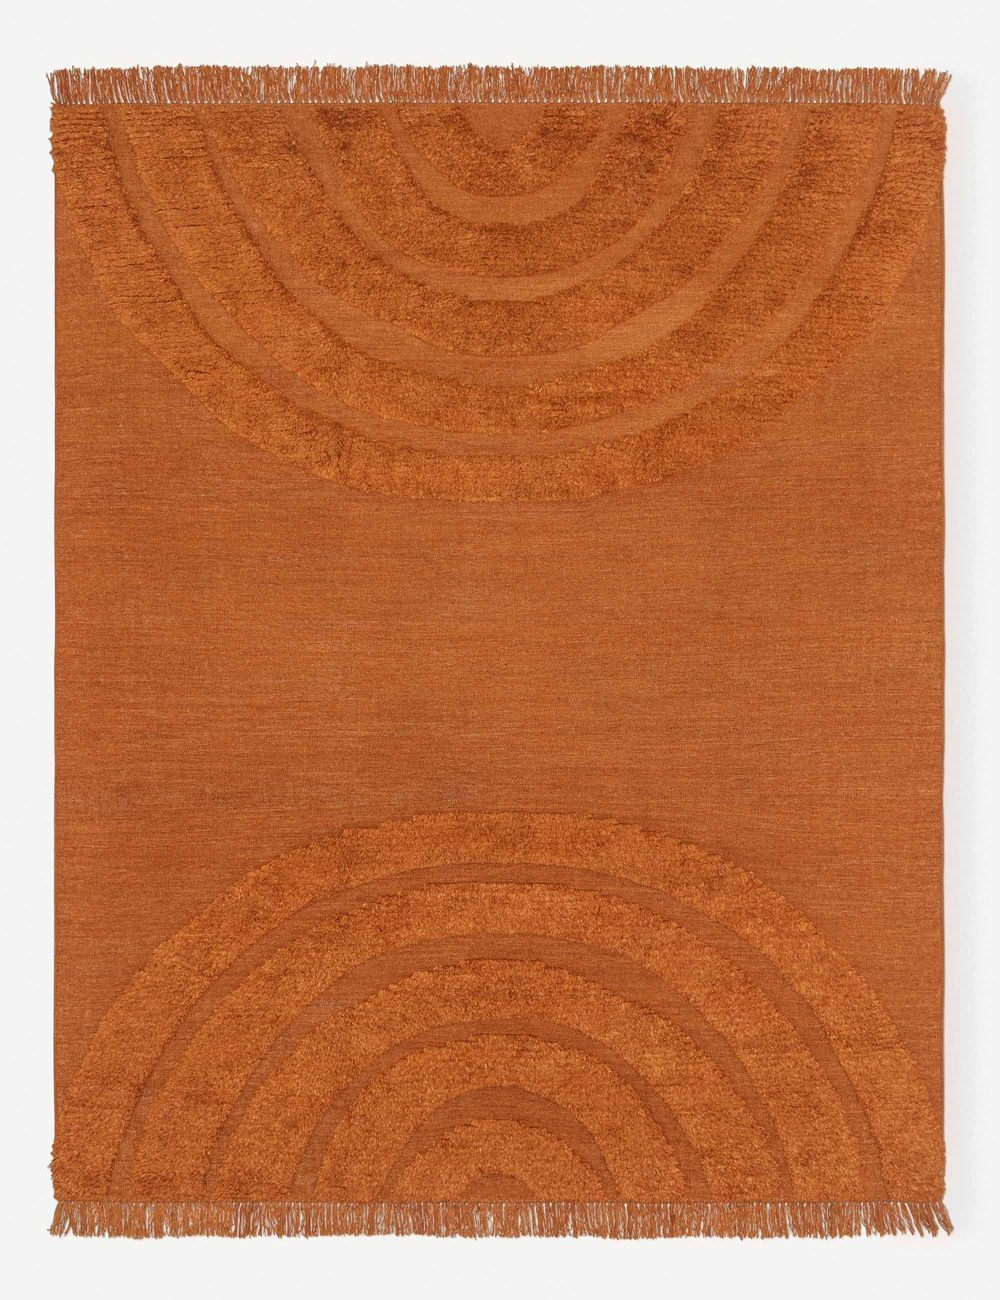 ARCHES RUG, RUST BY SARAH SHERMAN SAMUEL